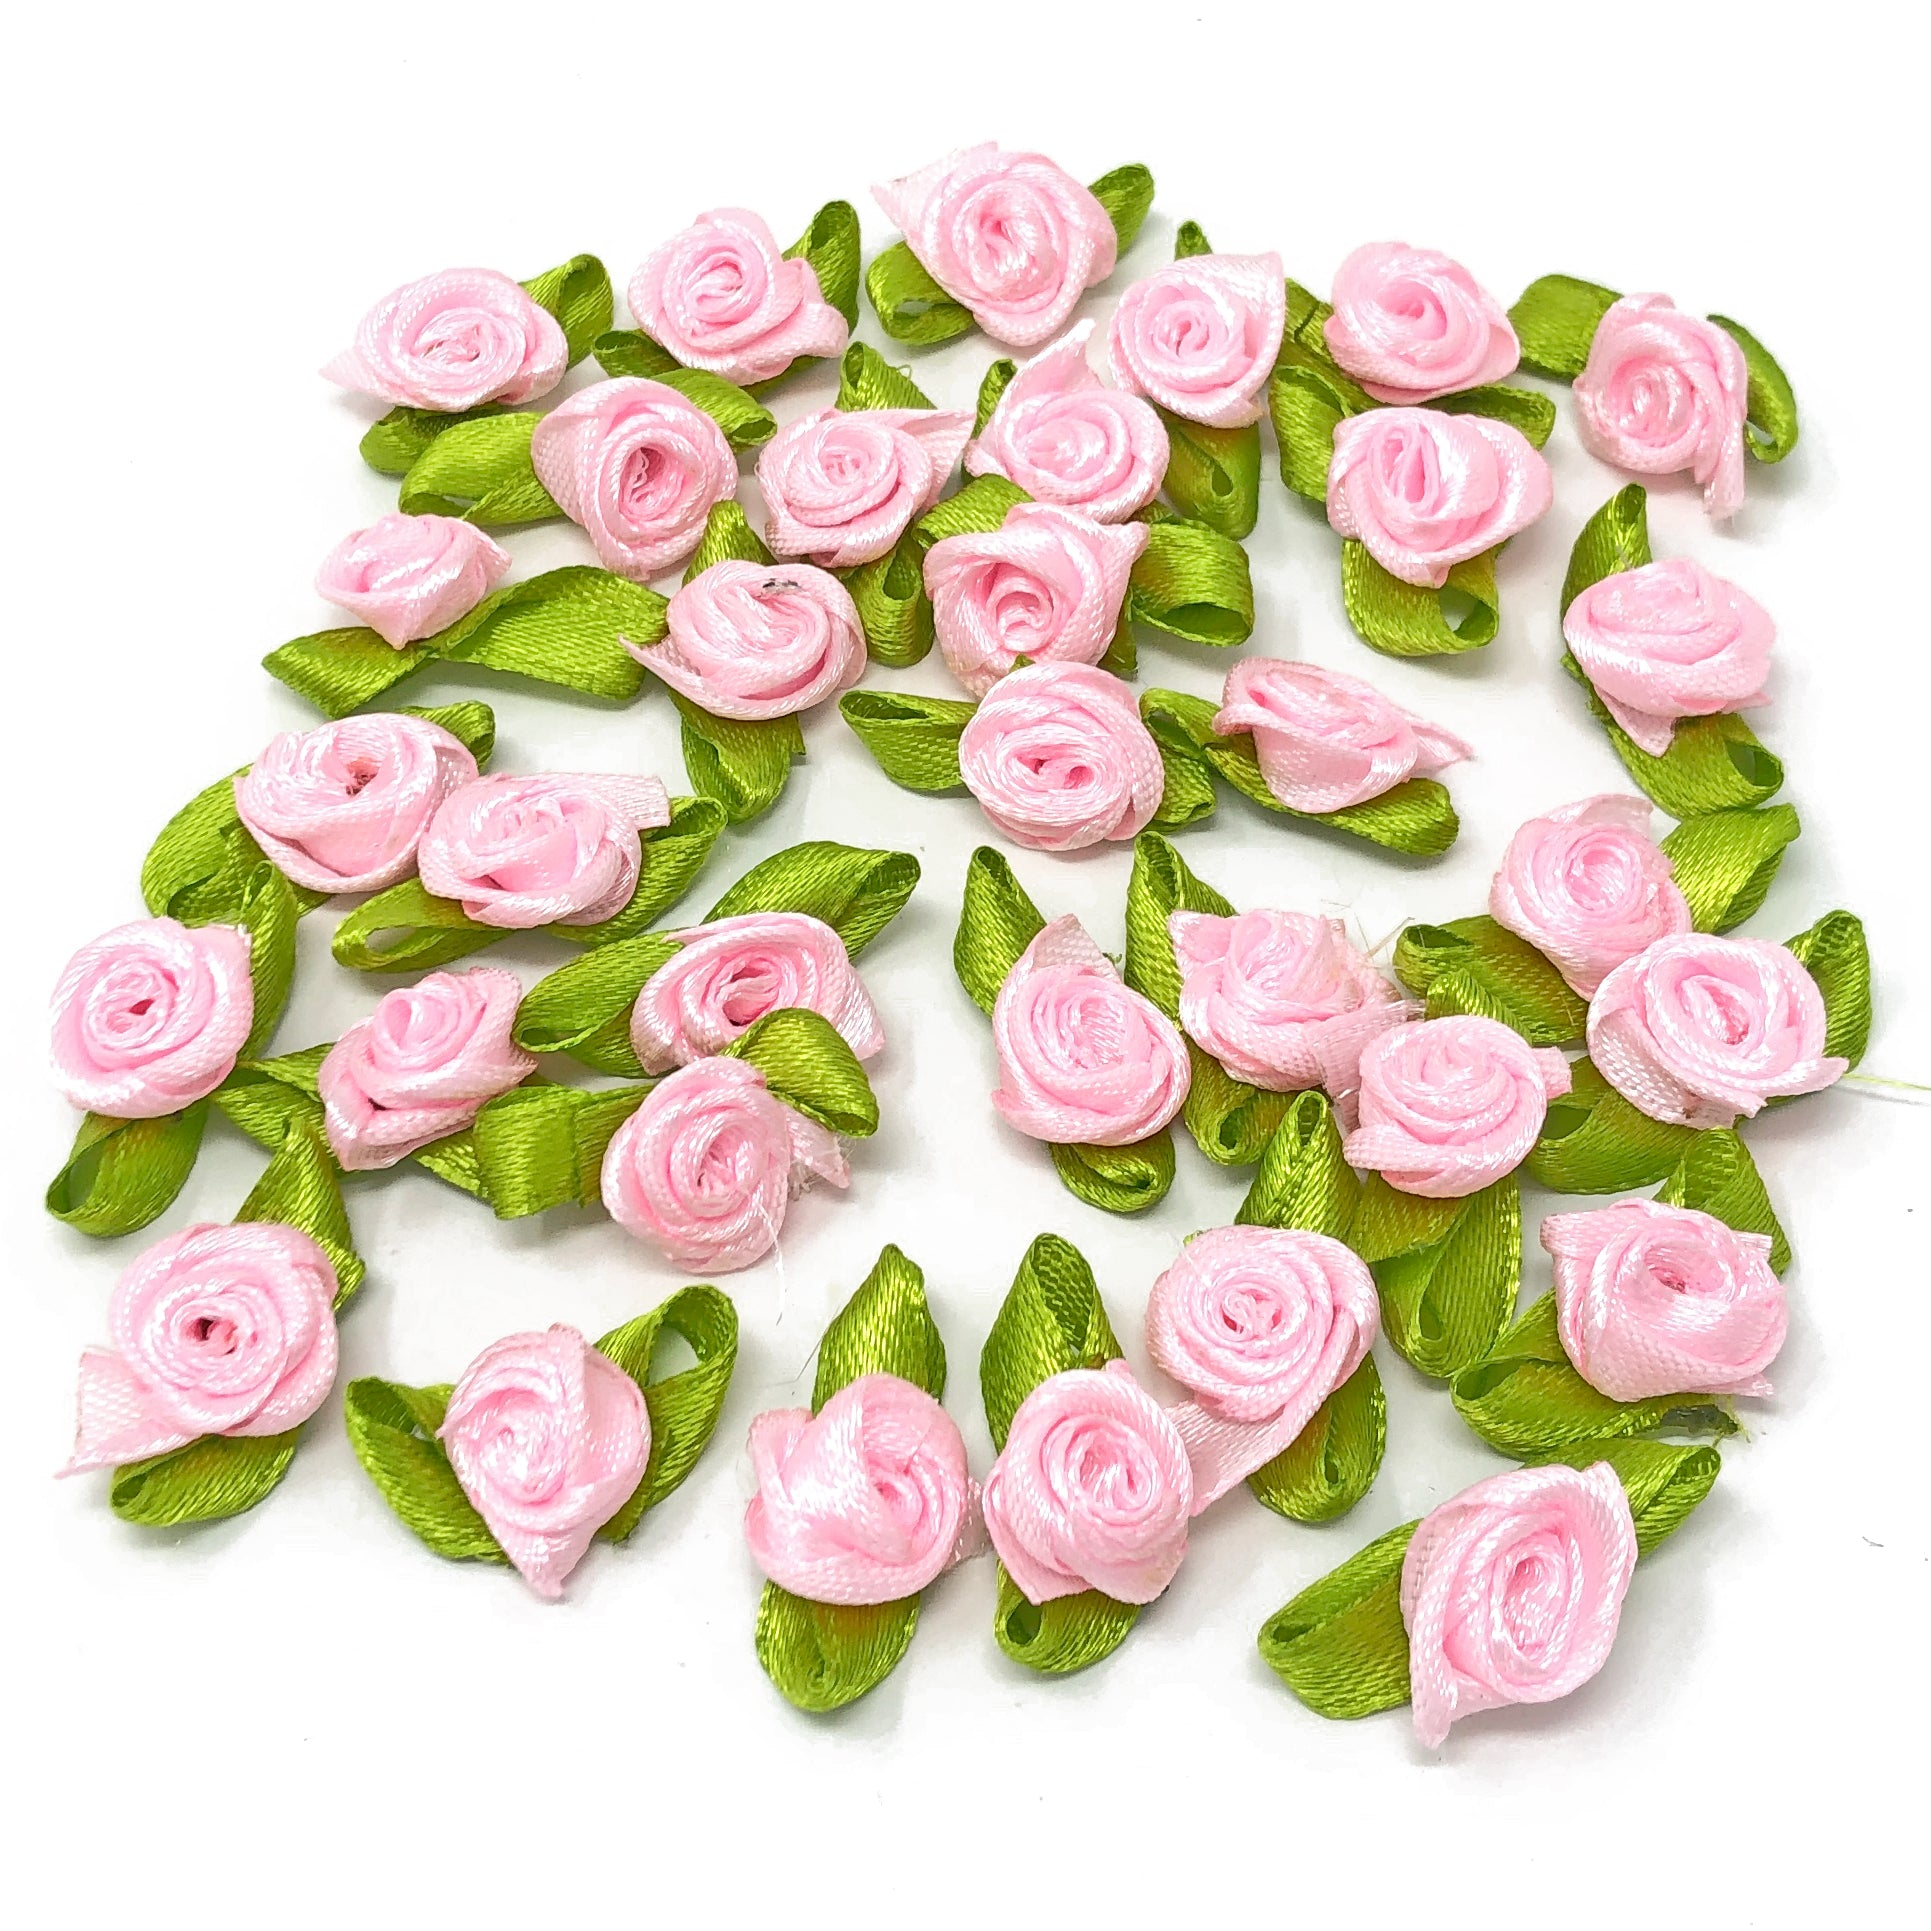 Mini 15mm Rose Satin Ribbon Rose Buds With Base